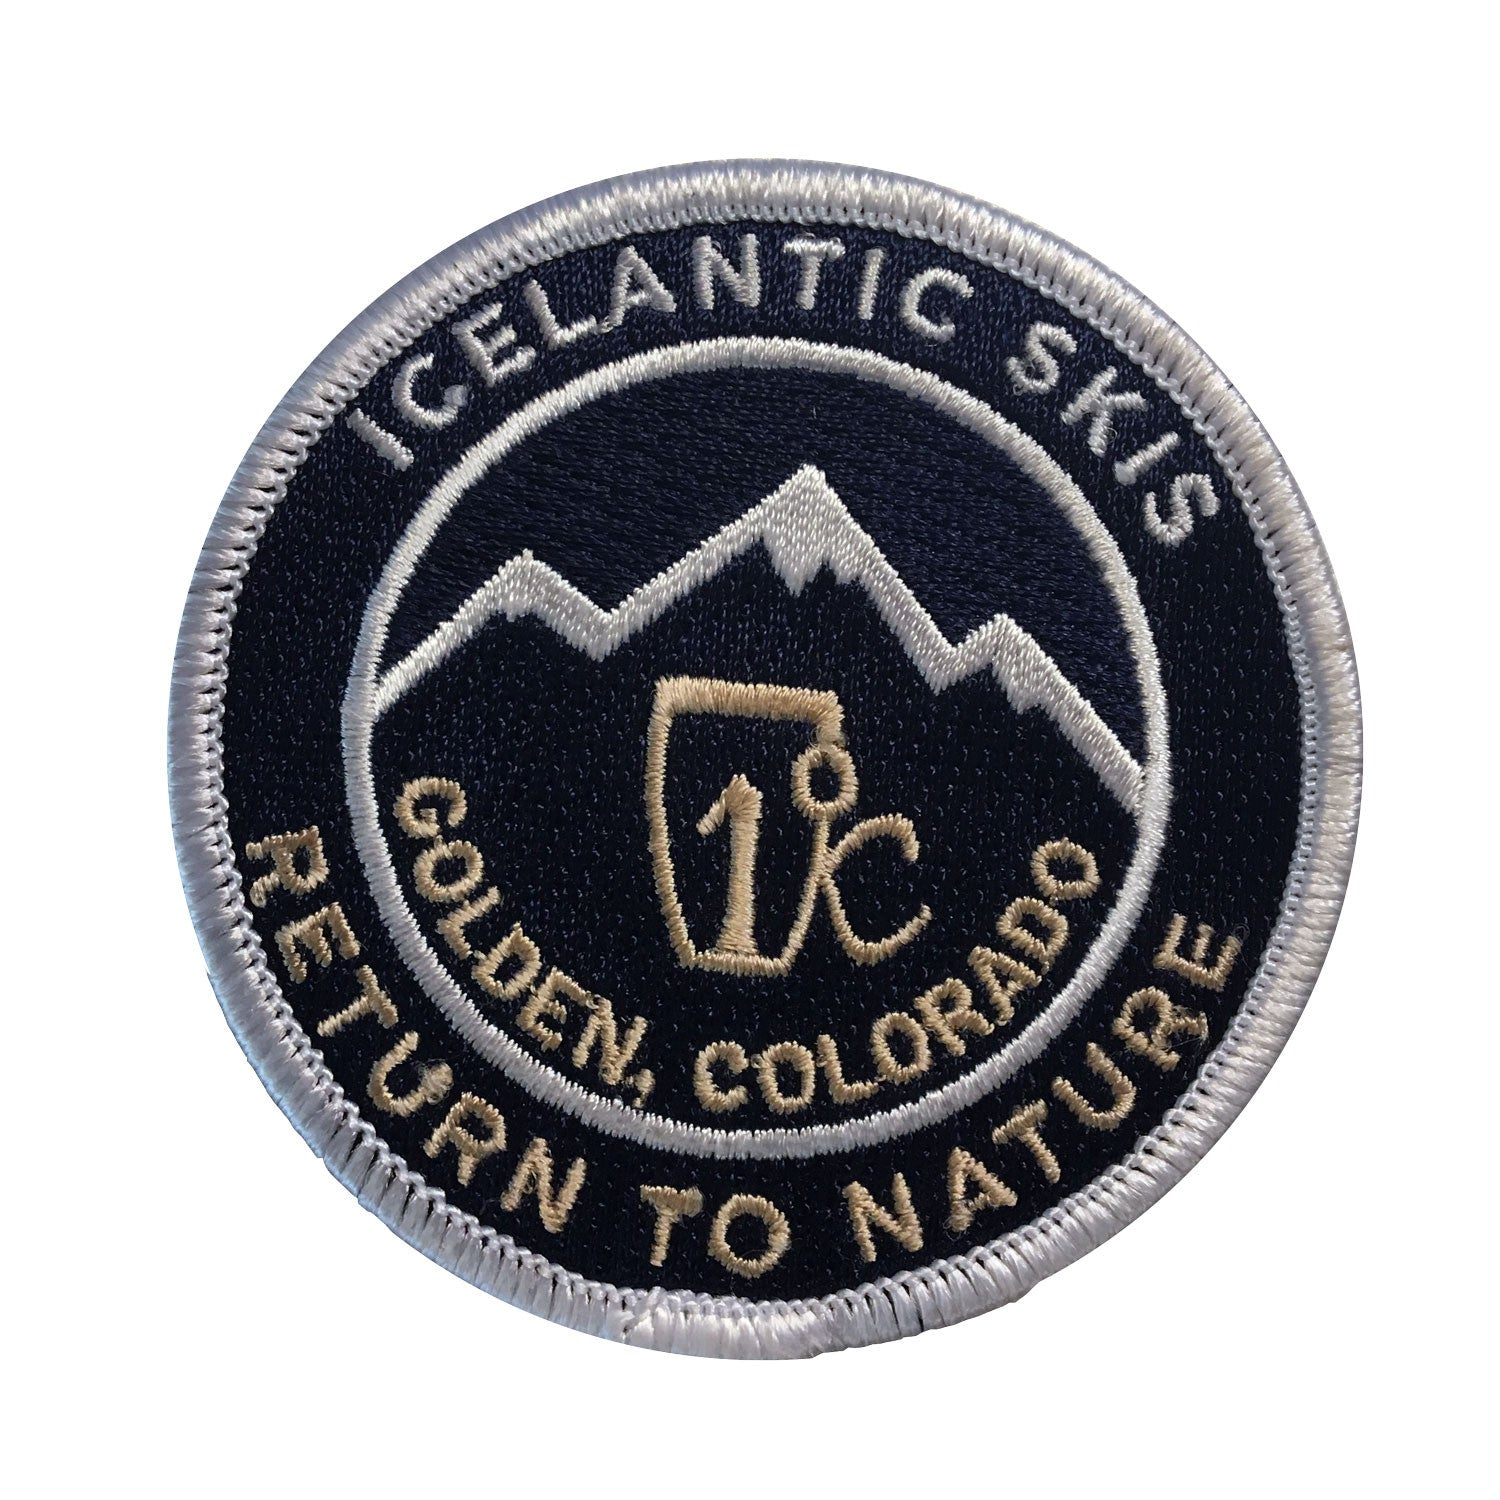 RTN Patch